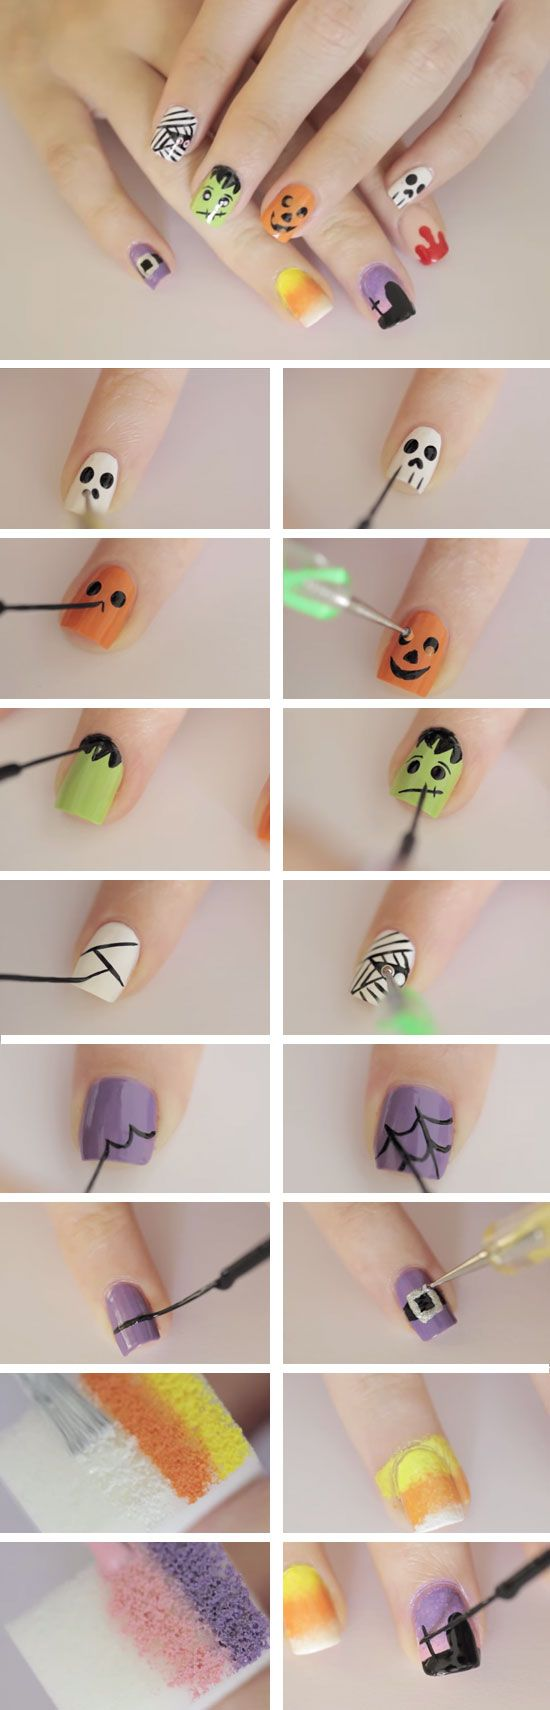 halloween-nail-art-tutorials-2016-6